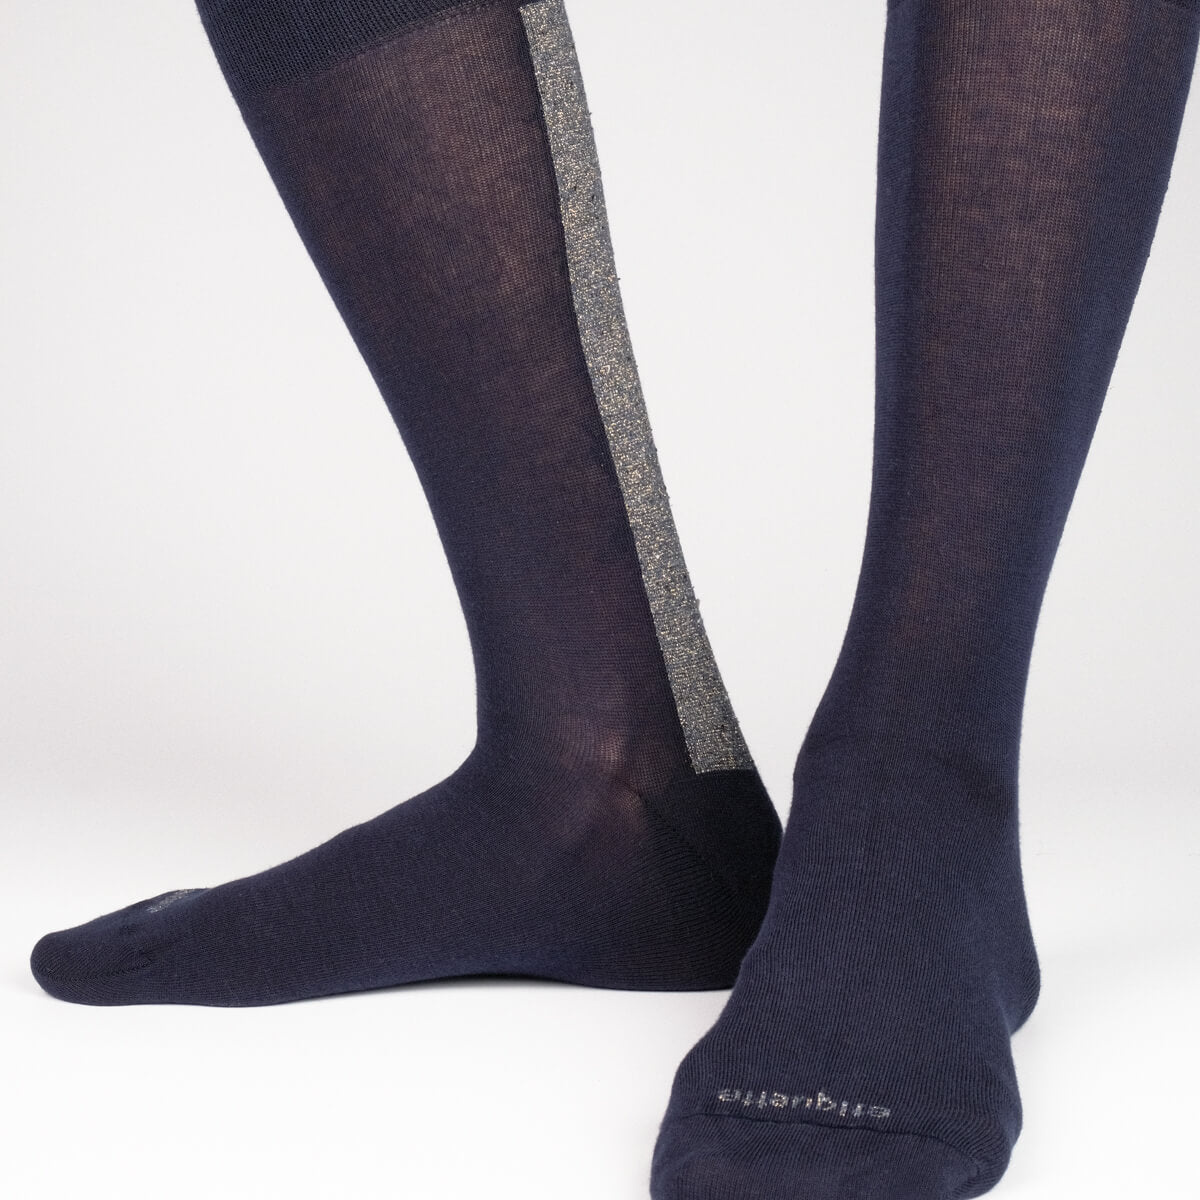 Mens Socks - Beat It Gift Box - Grey Black⎪Etiquette Clothiers